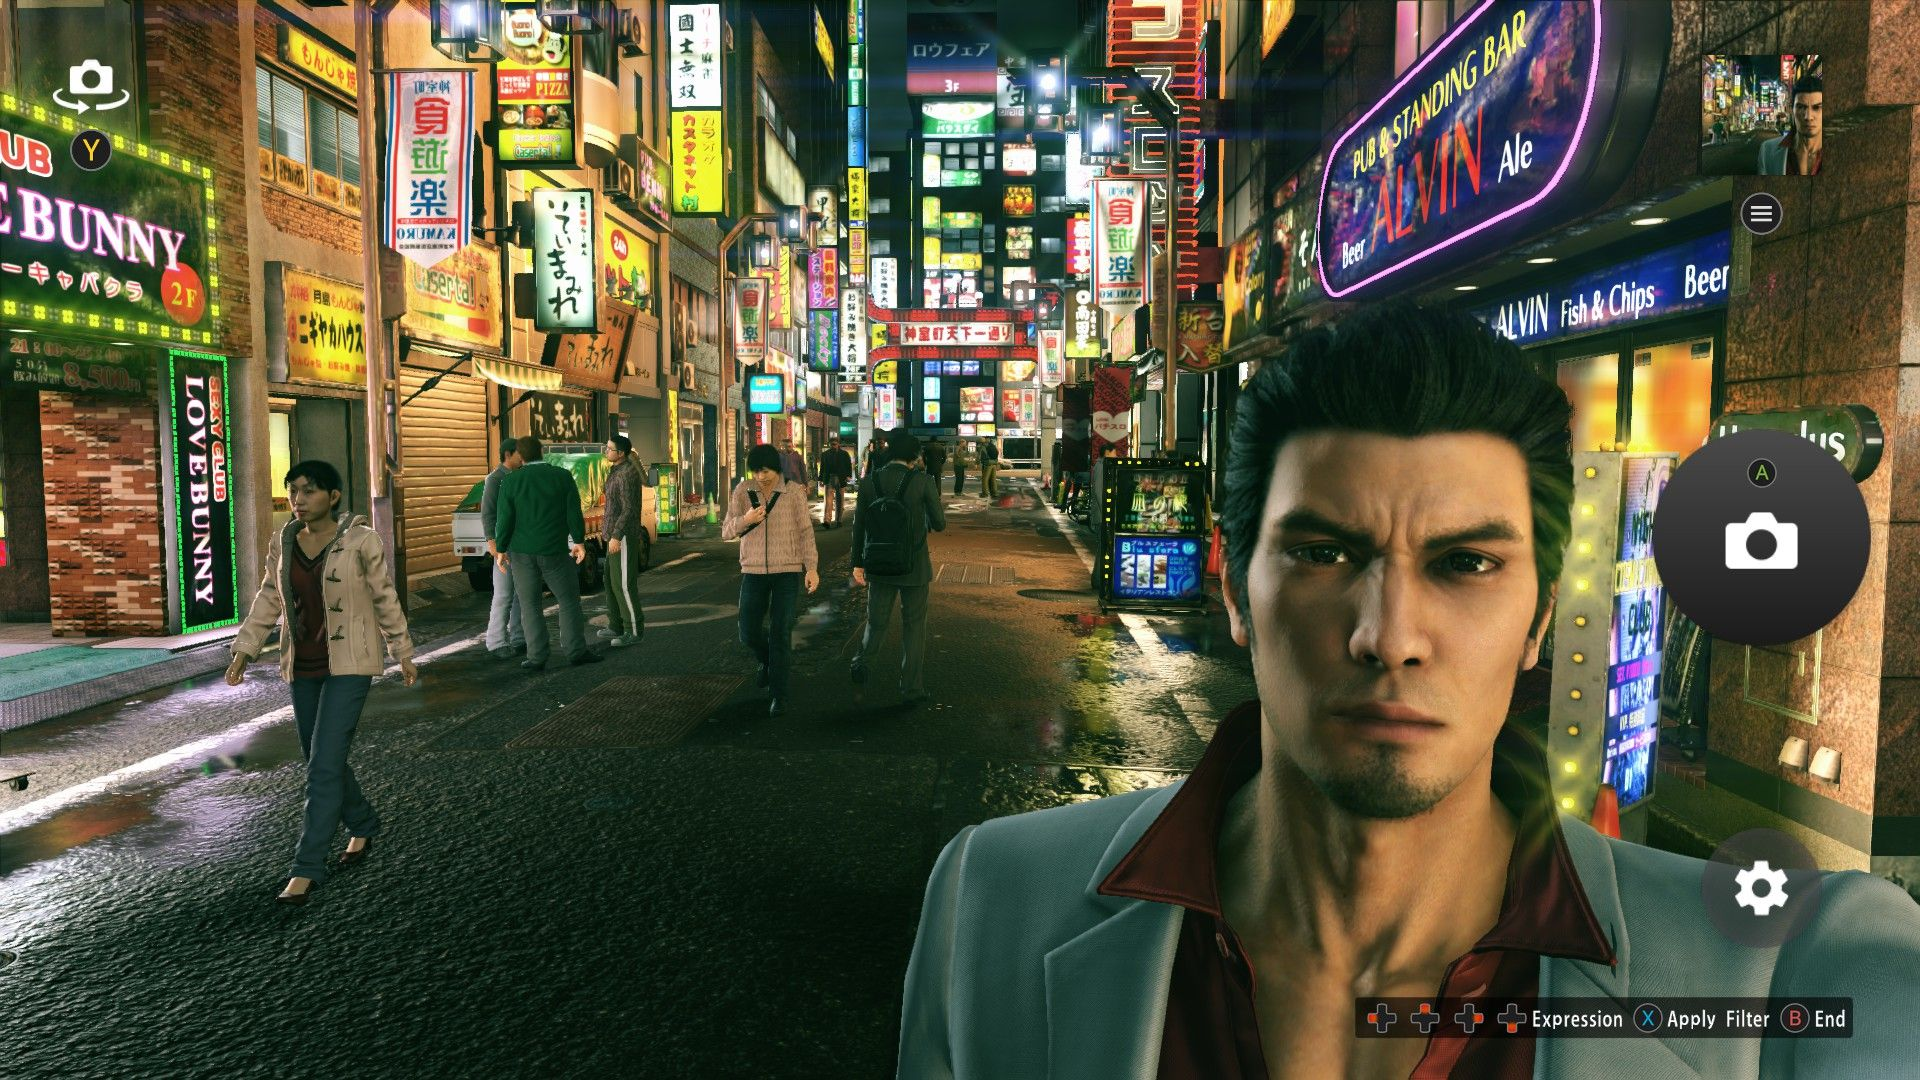 Kazuma Kiryu, Yakuza protagonist, is taking a selfie of himself in Kamurocho. The street behind him is narrow and crowded with bright store signs.